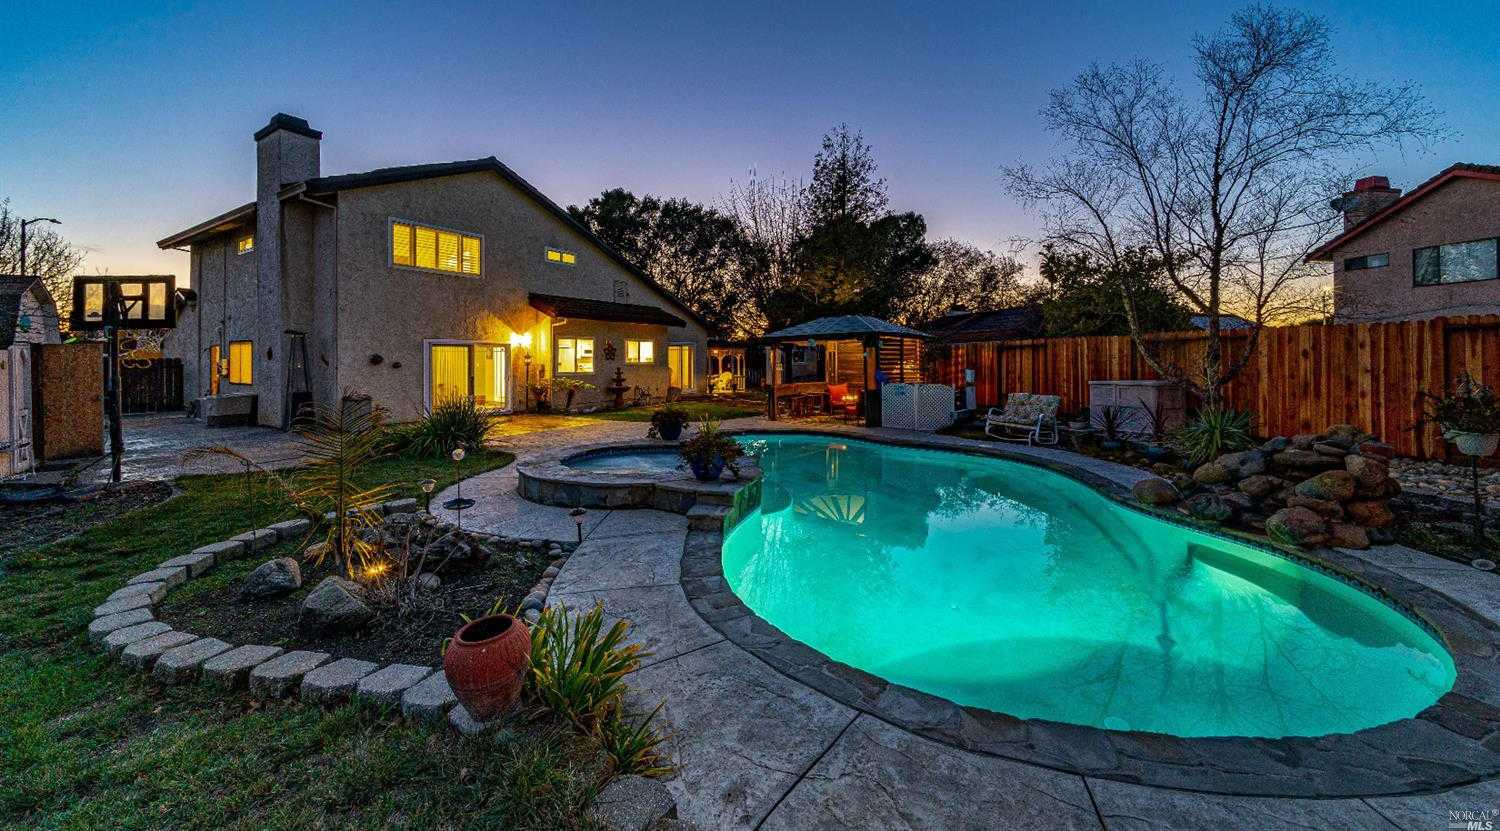 $728,500 - 4Br/3Ba -  for Sale in American Canyon